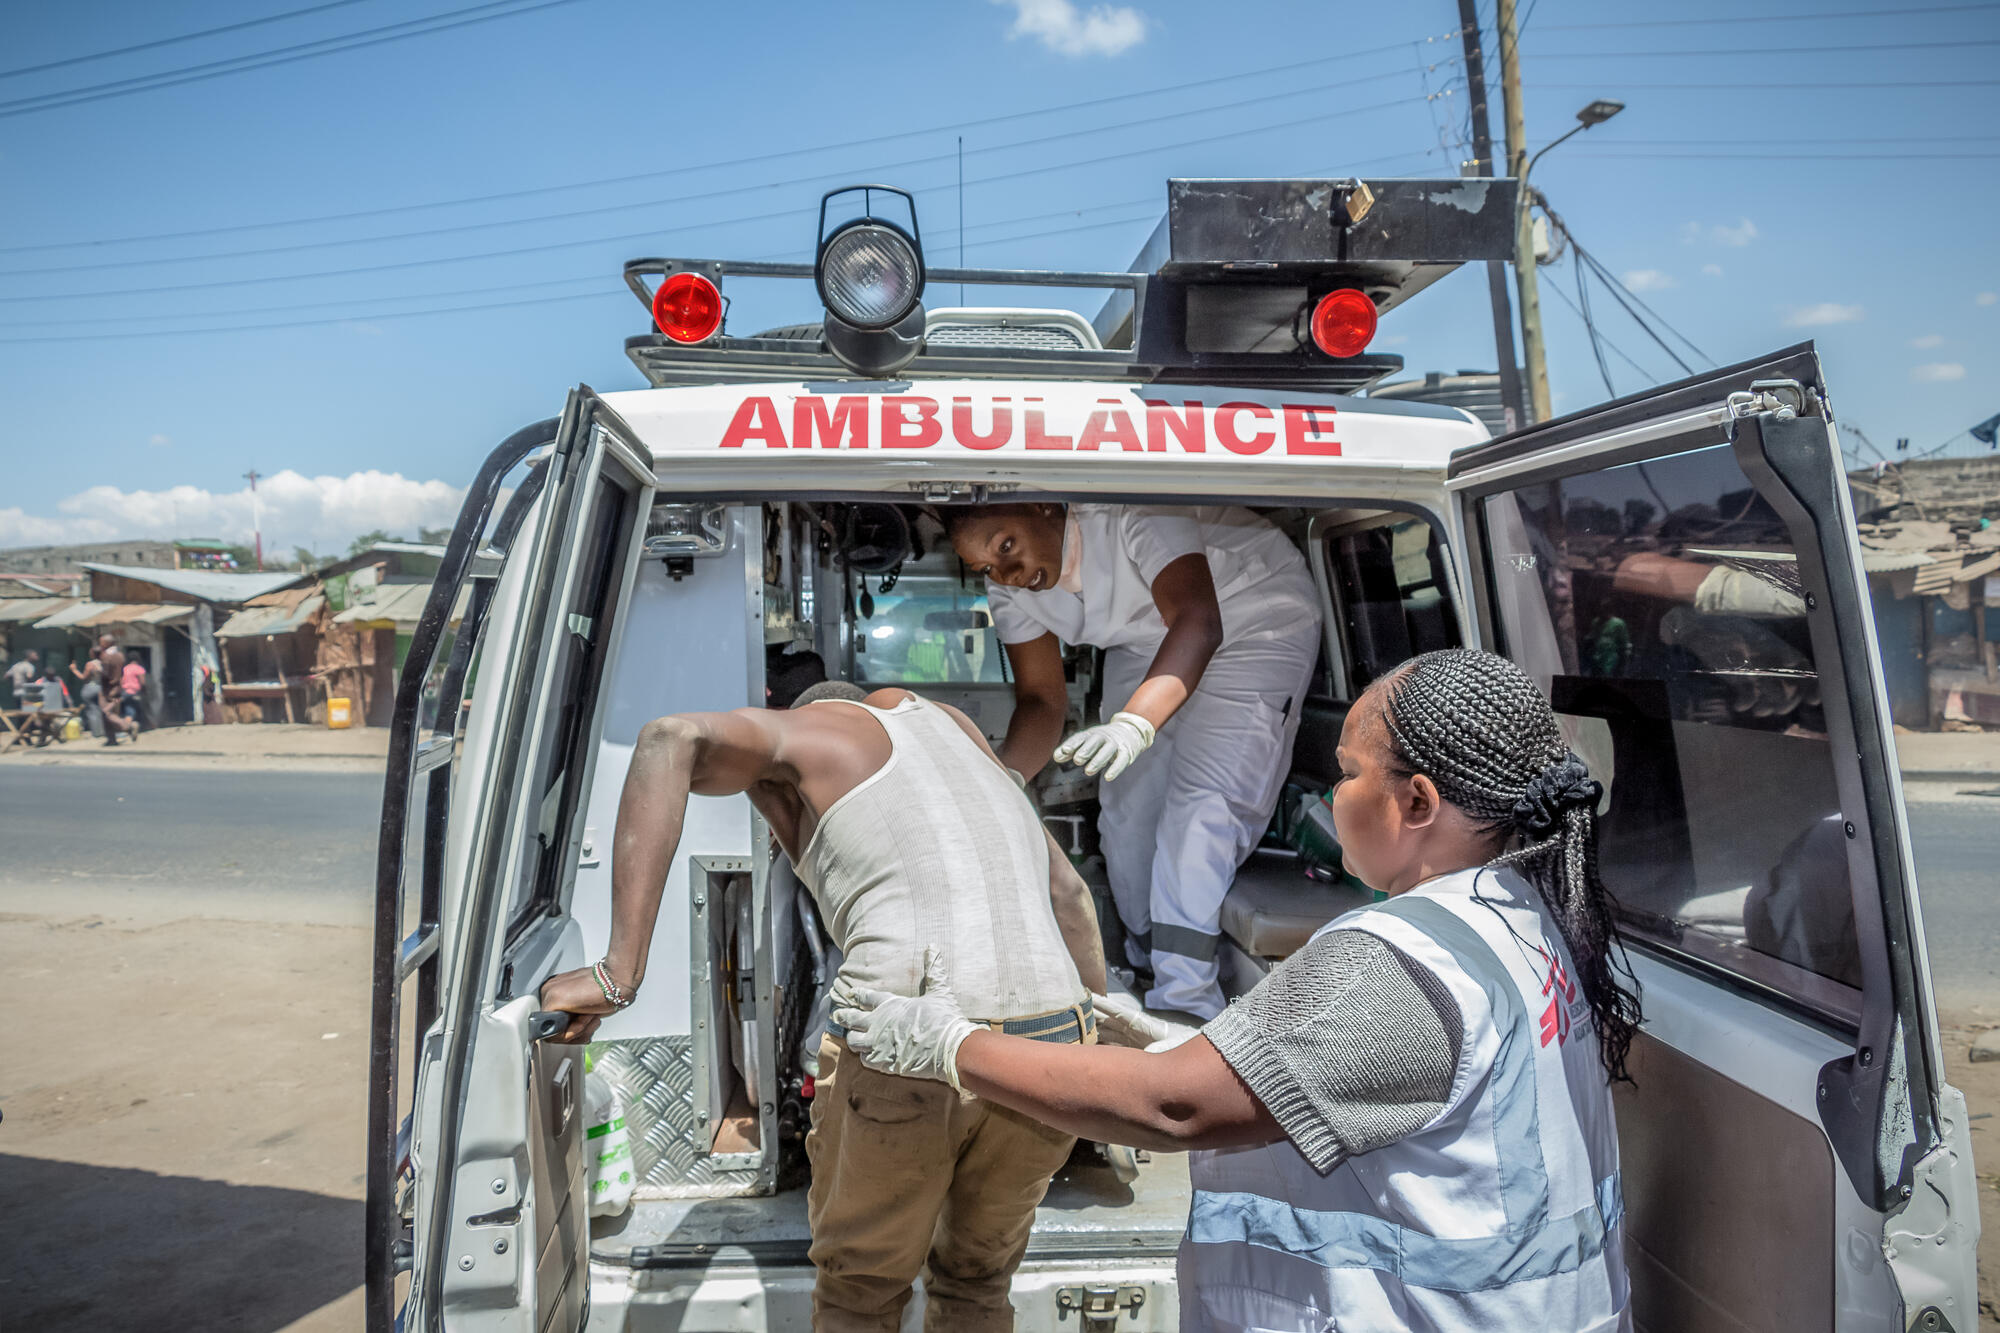 MSF staff help a patient into an ambulance in Nairobi